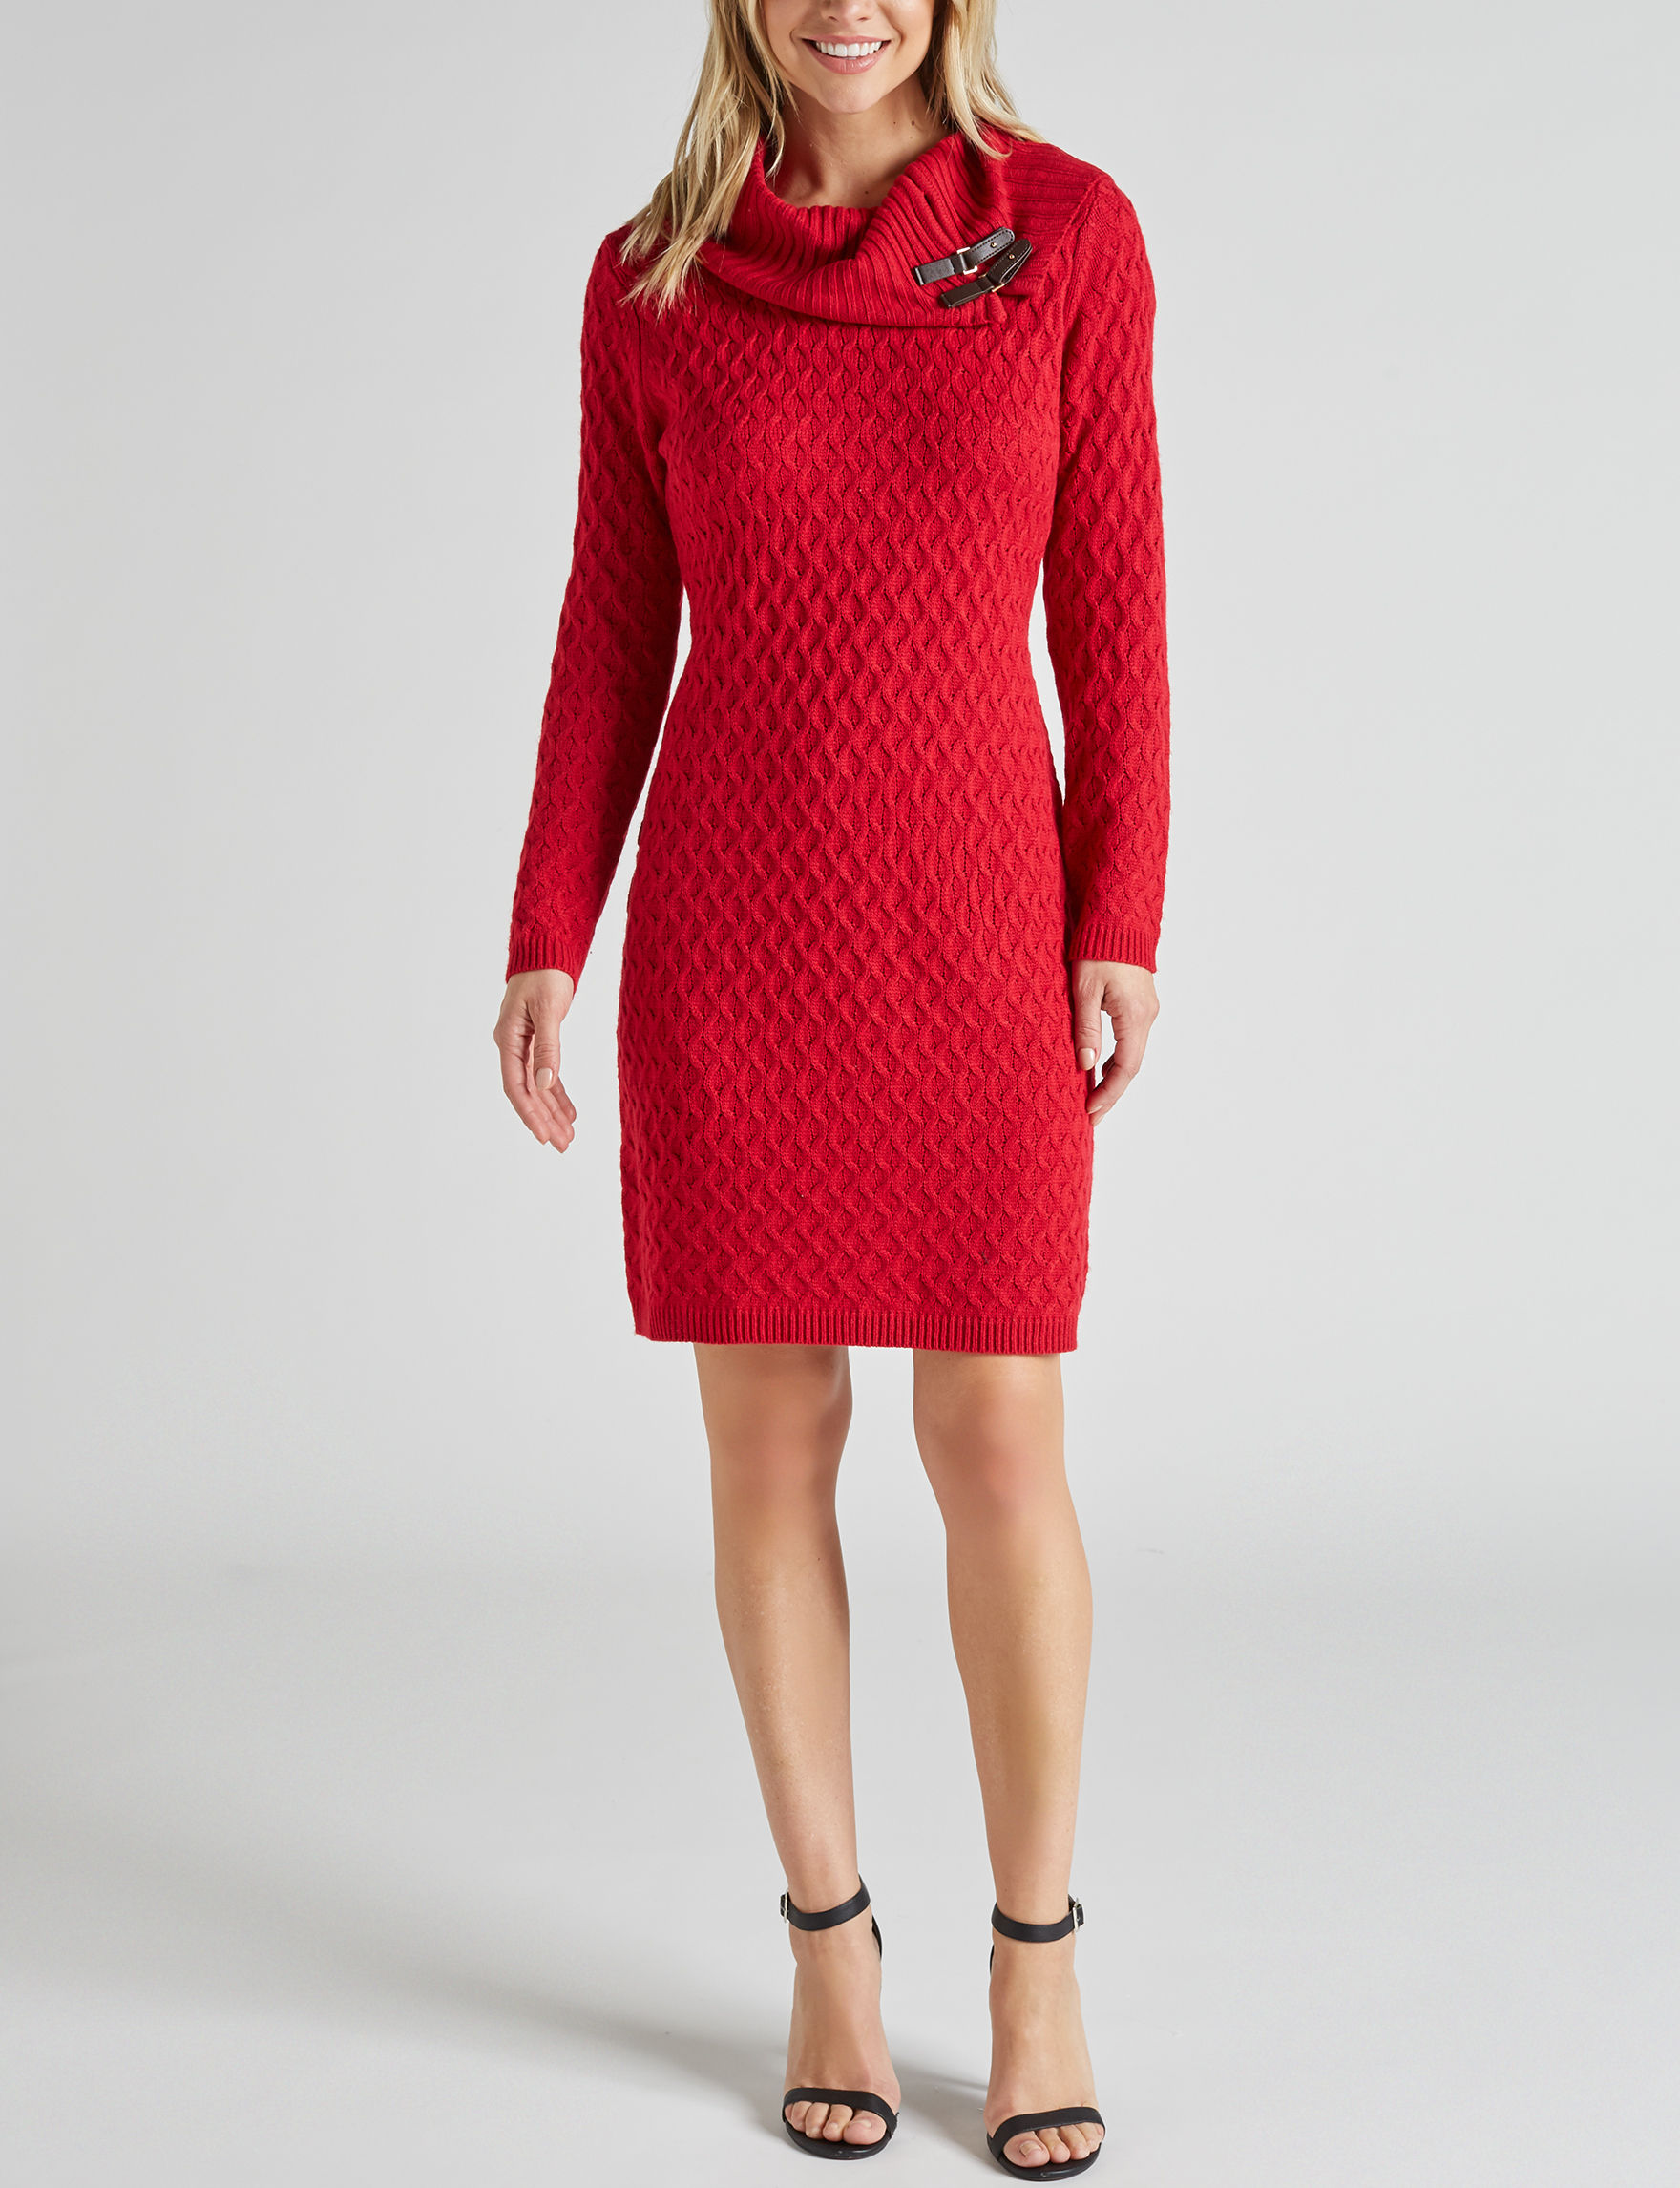 Studio One Red Everyday & Casual Sweater Dresses